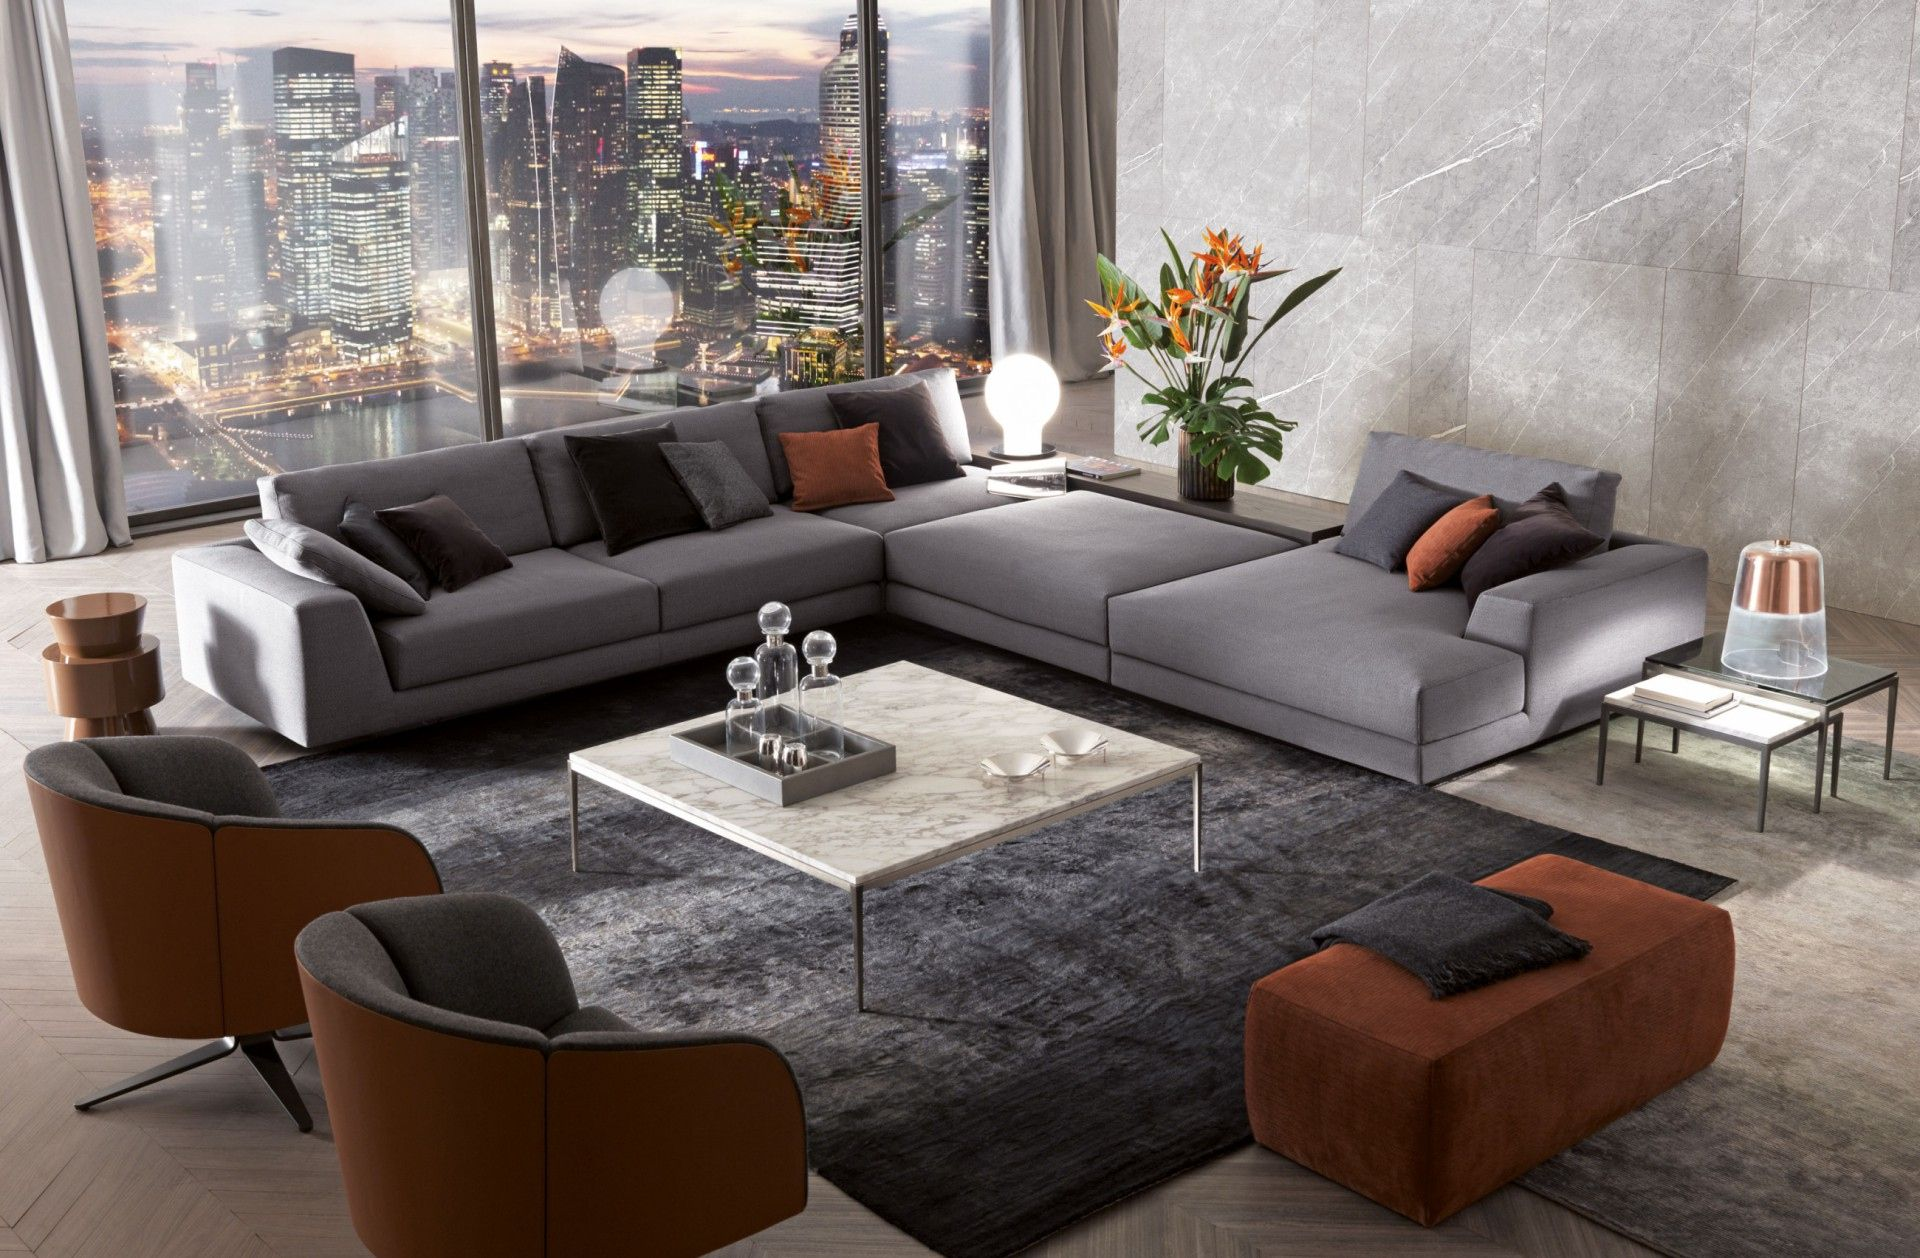 The C Shaped Argo Sofa Fills The Space With Its Fully Customisable